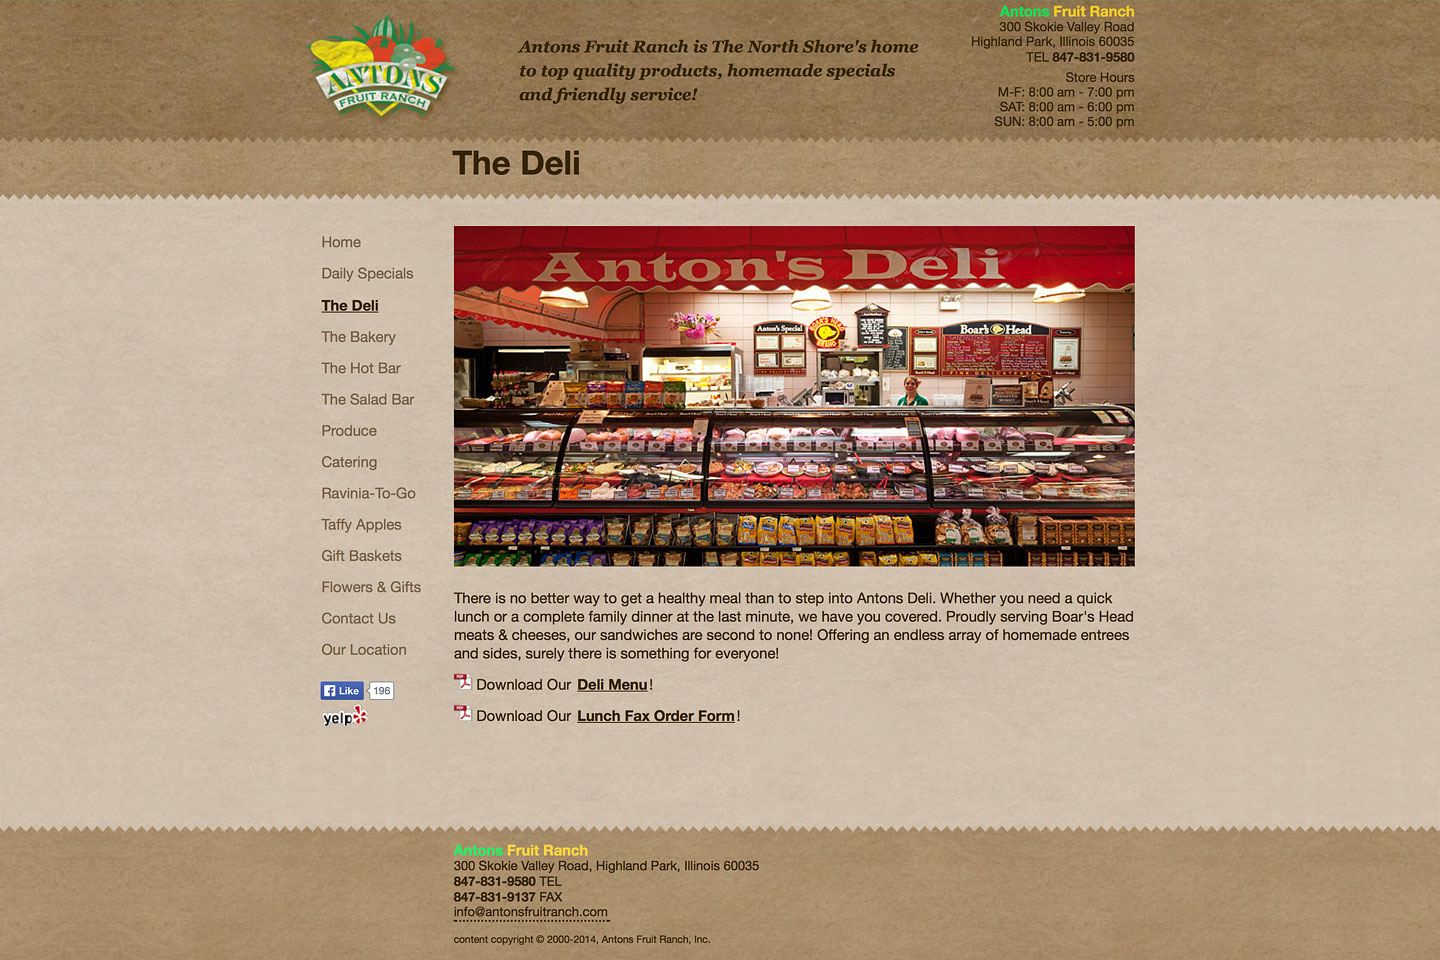 a screen capture of the deli page, featuring a wide angle photo of the fully stocked antons fruit ranch deli department display